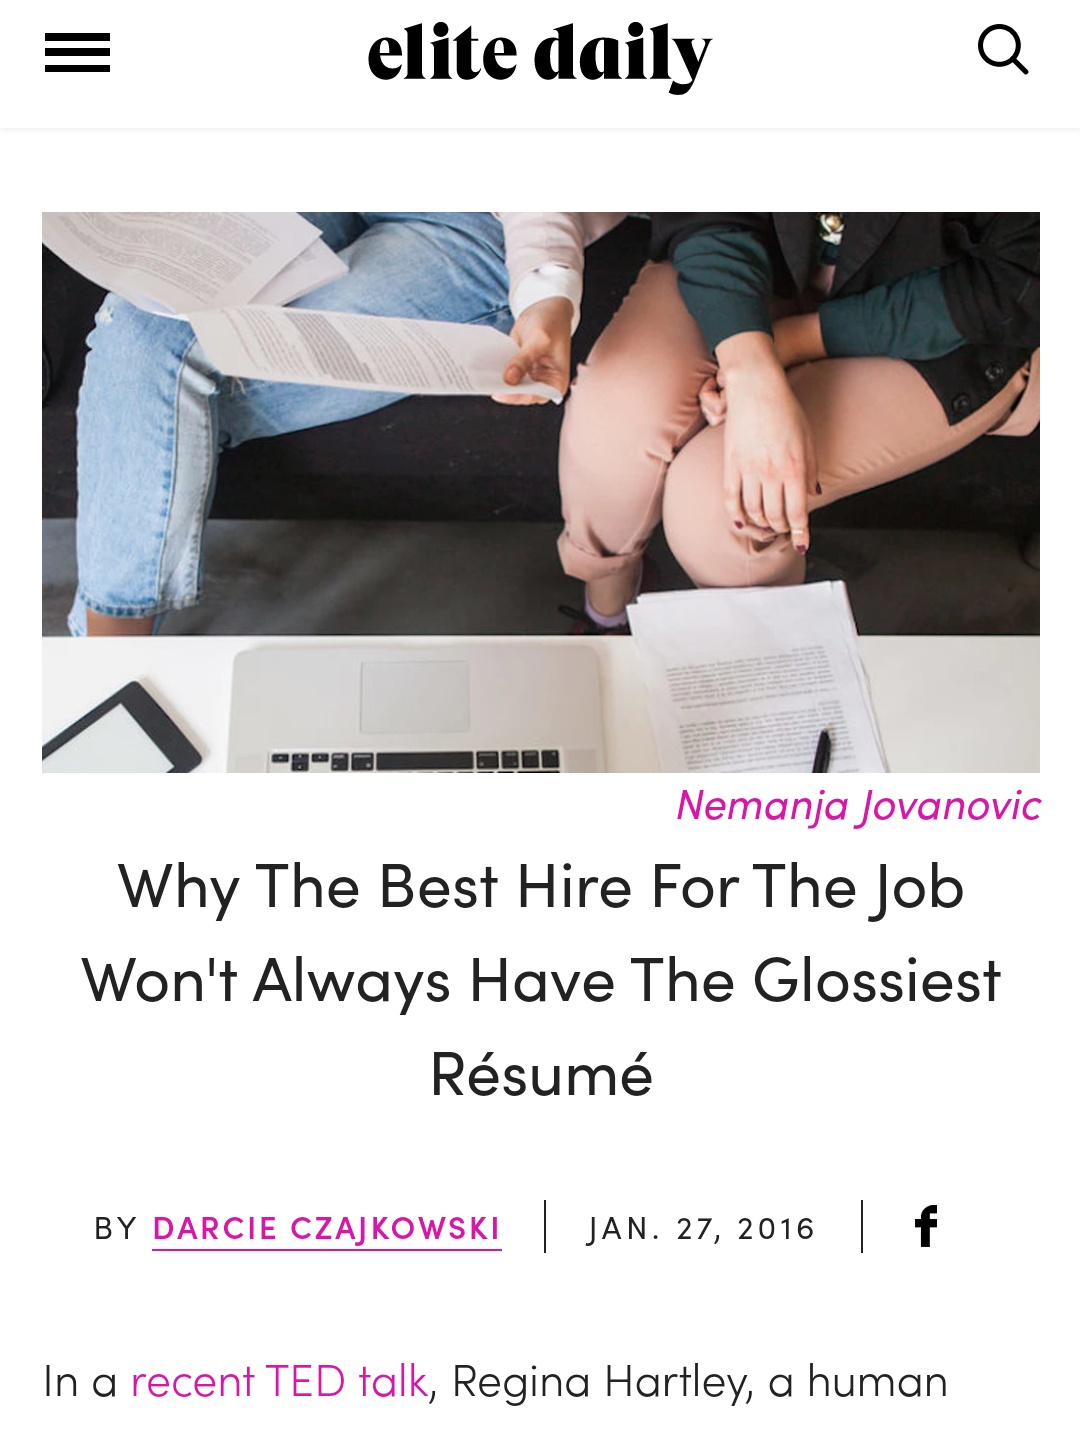 Why-Best-Hire-Won't-Always-have-Glossiest Resume_Darcie-Brown-LMFT-on_Elite-Daily